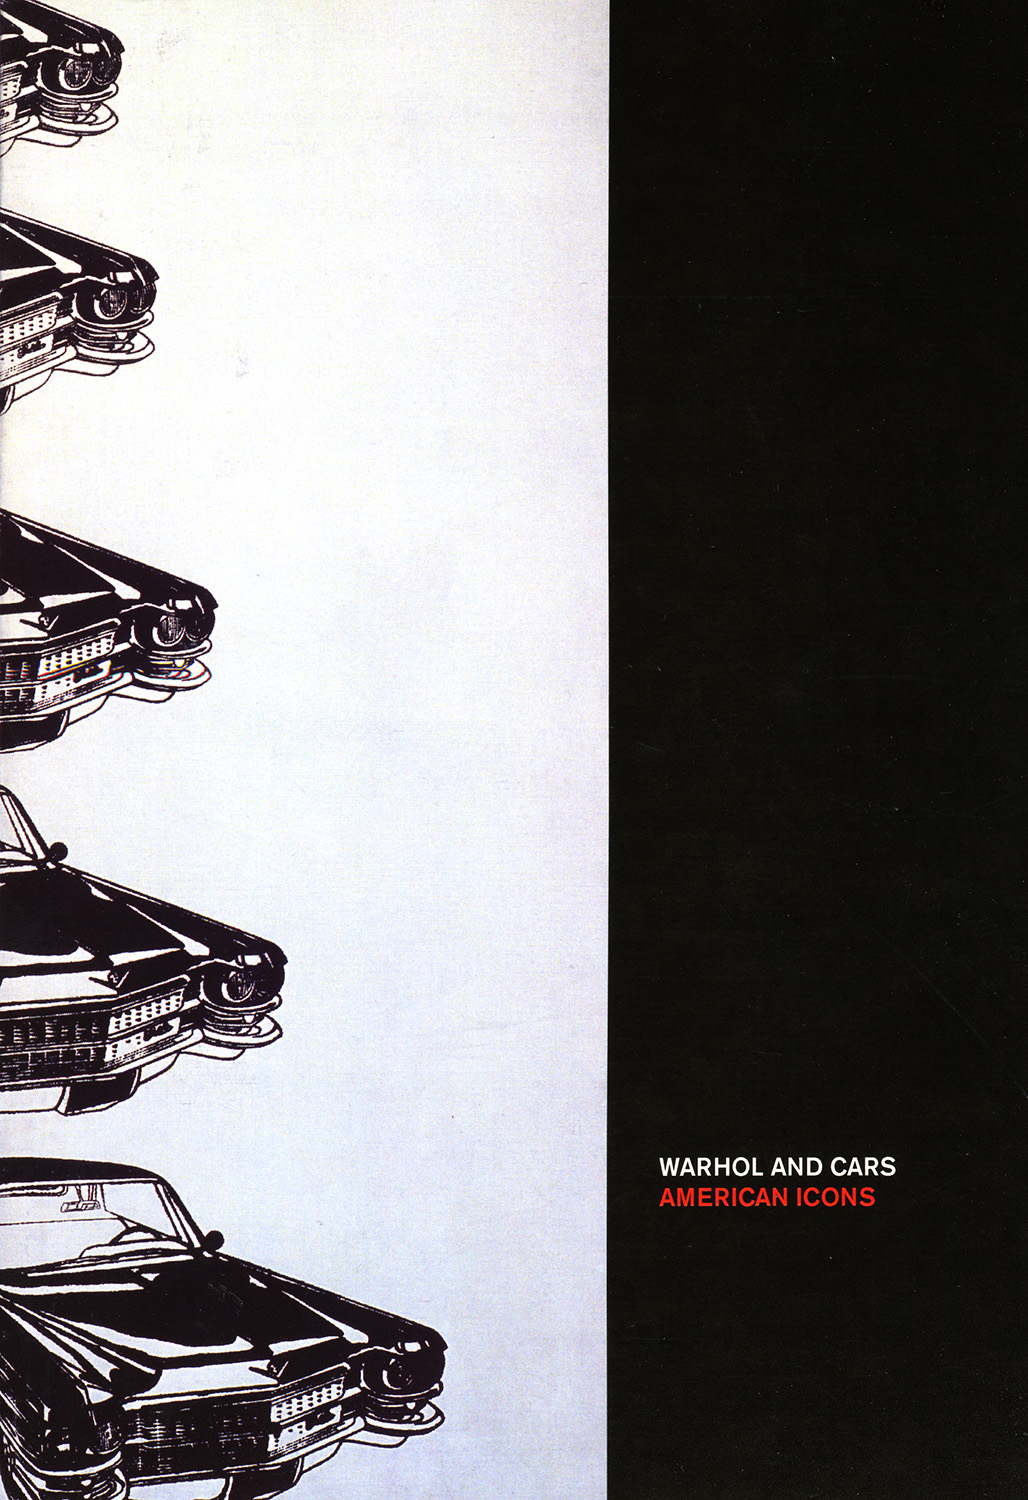 American Icons: Warhol and Cars -